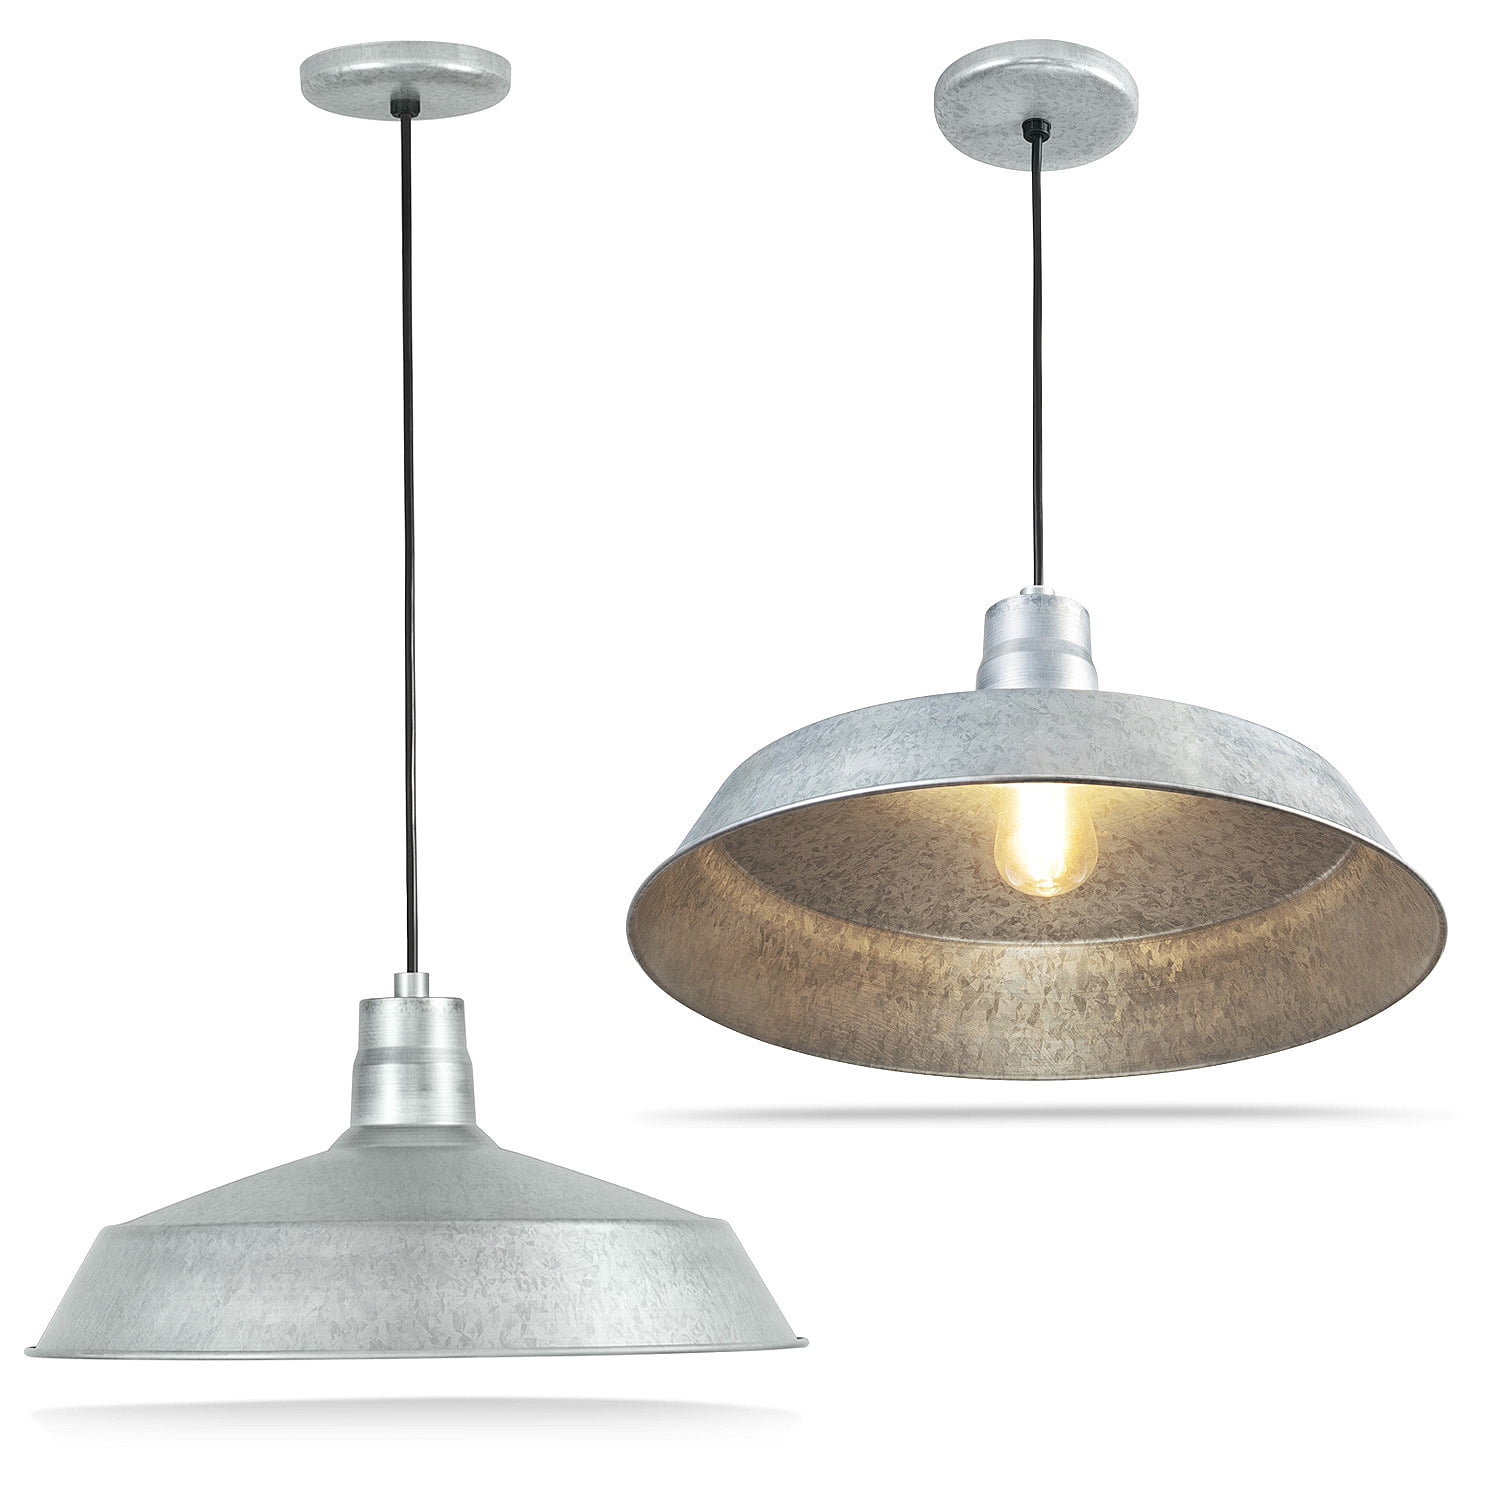 17 Inch Industrial Galvanized Pendant Barn Light Fixture With 10ft Adjustable Cord Ceiling Mounted Vintage Hanging Light For Indoor Use 120v Hardwire E26 Base Led Compatible Ul Listed 2pack Walmart Com Walmart Com